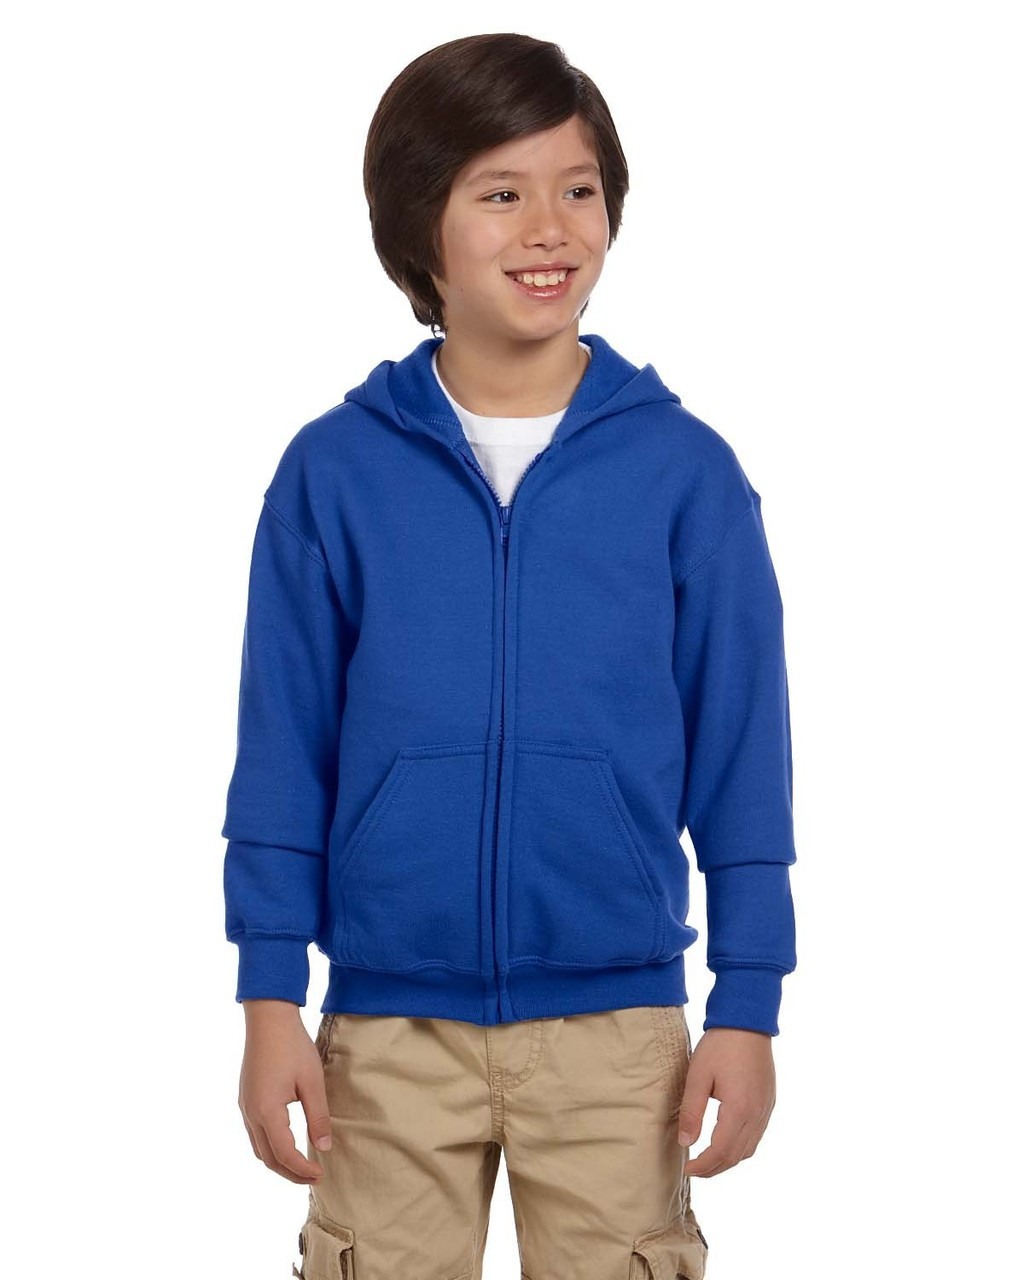 Royal - G186B Gildan Heavy Blend Youth 50/50 Full Zip Hoodie | Blankclothing.ca